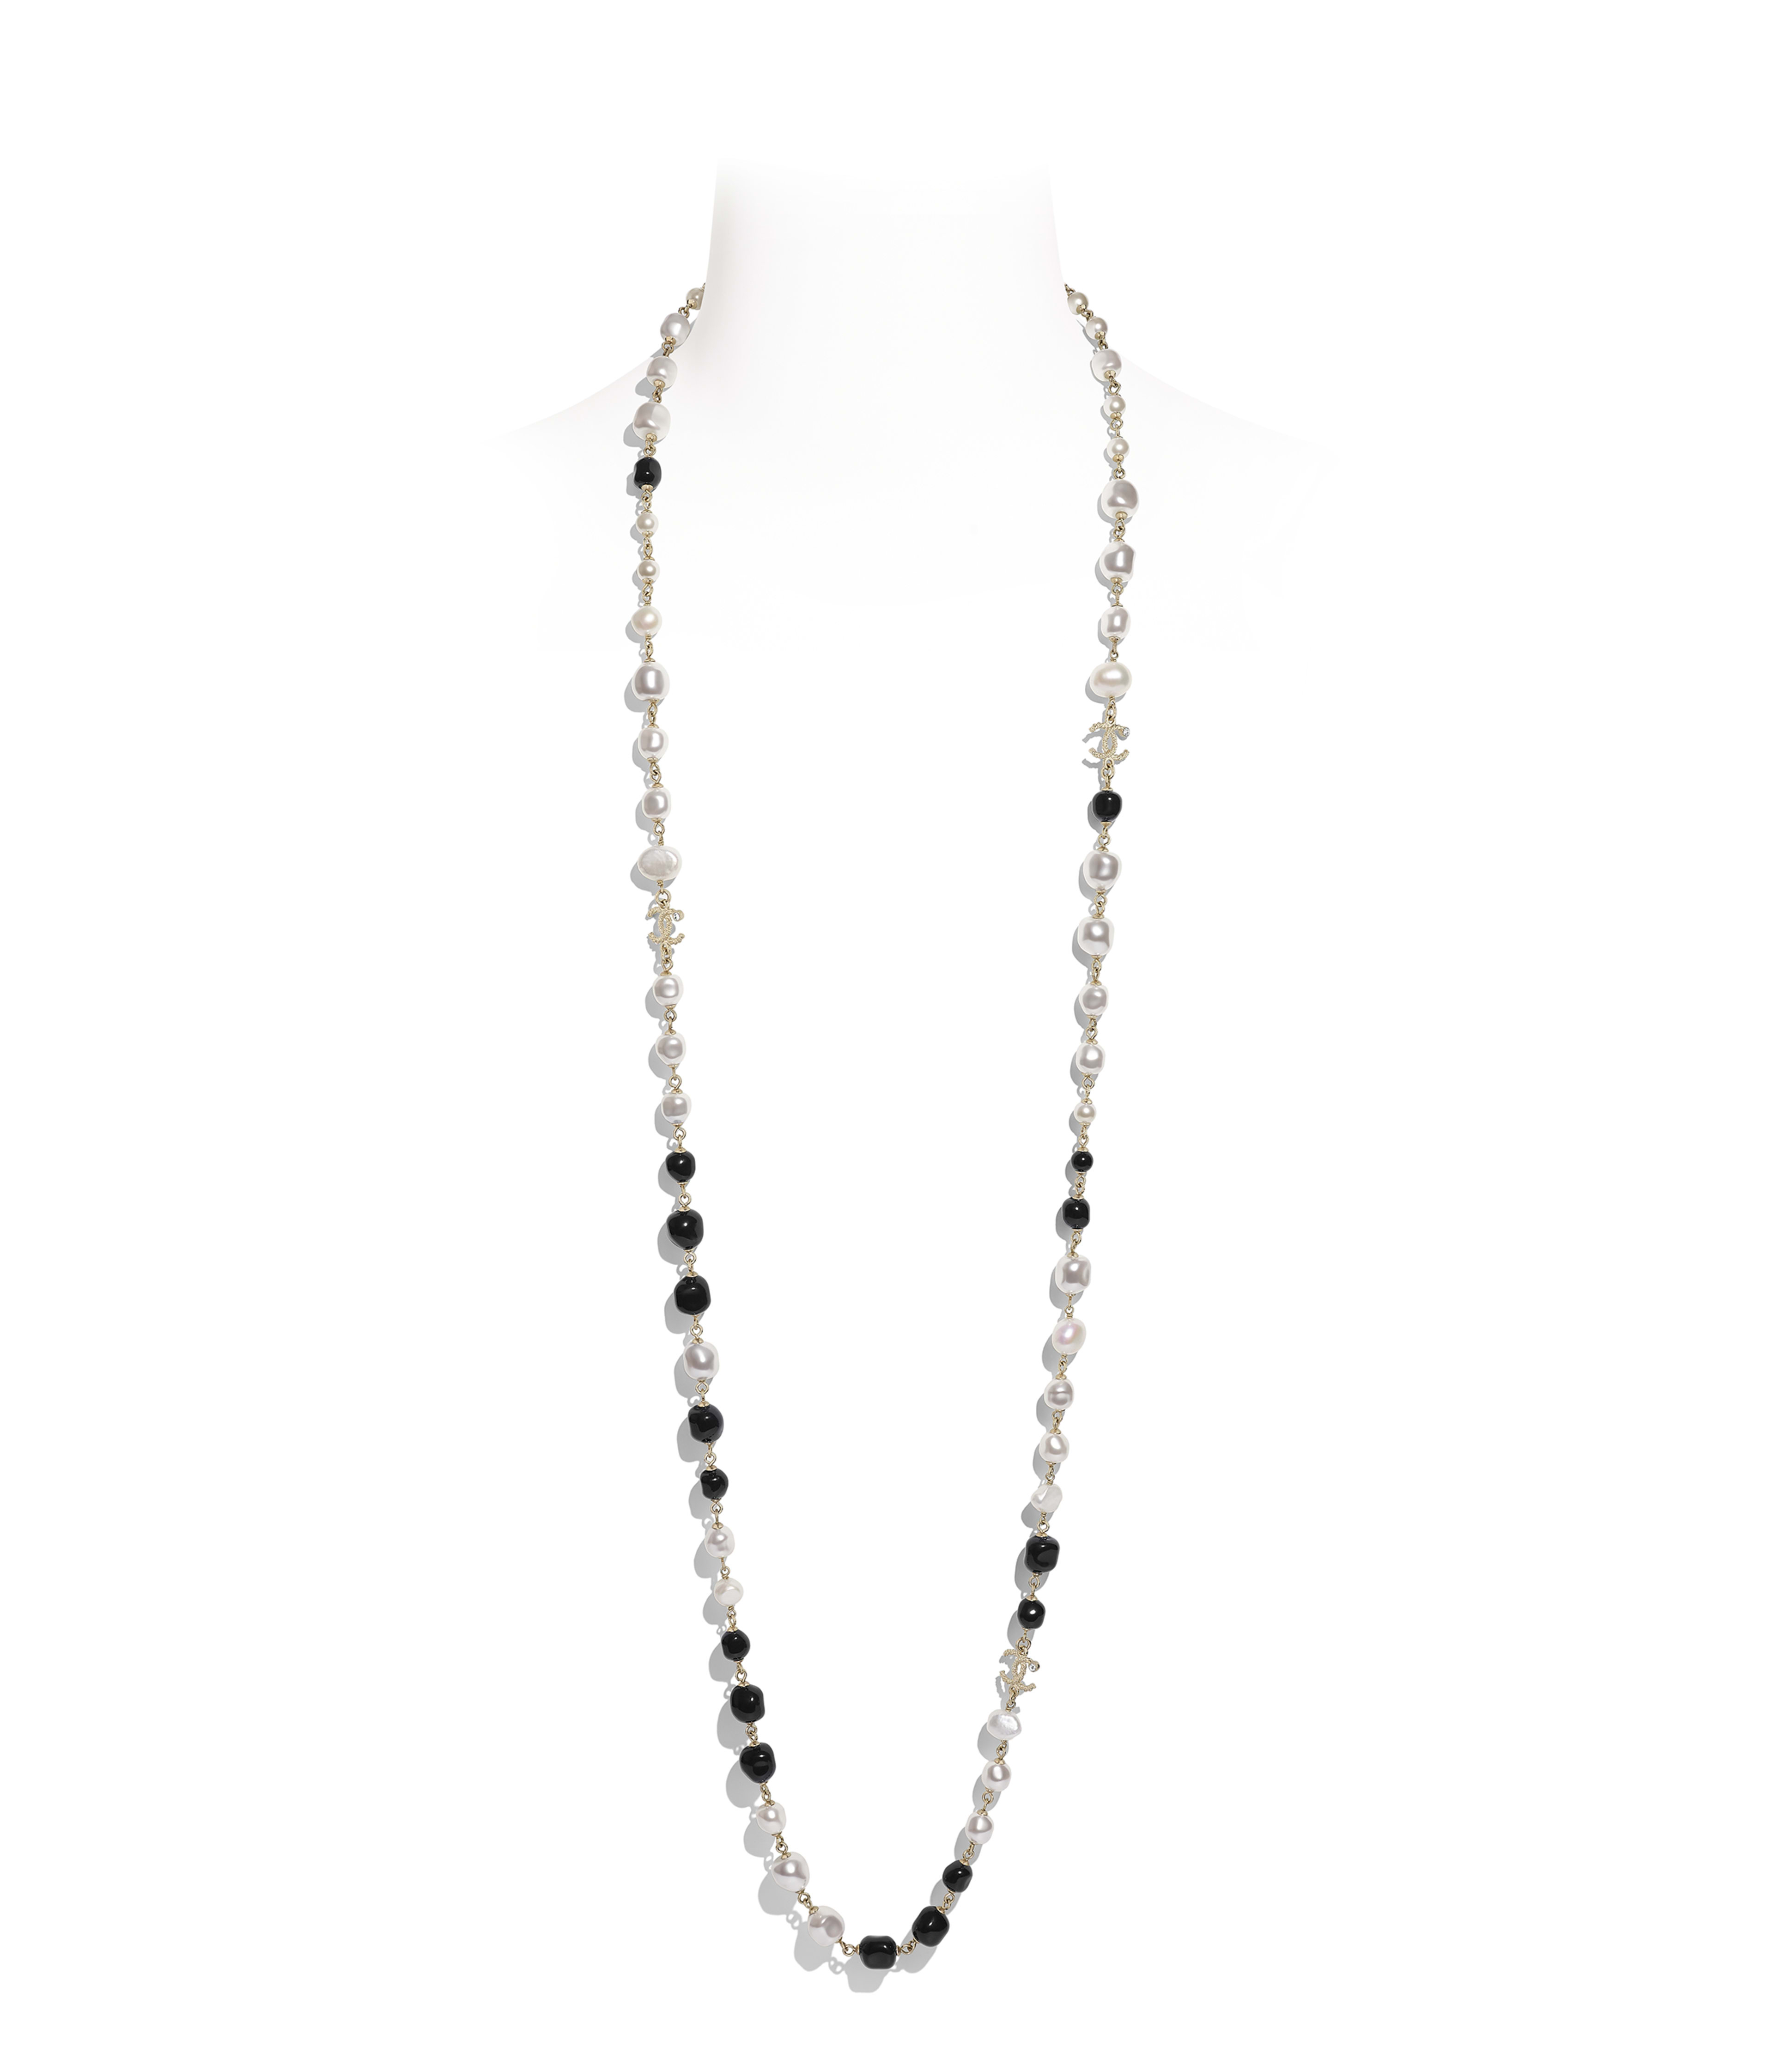 Necklaces – Costume Jewelry   Chanel Inside Most Recent String Of Beads Y  Necklaces (Gallery 22 of 25)